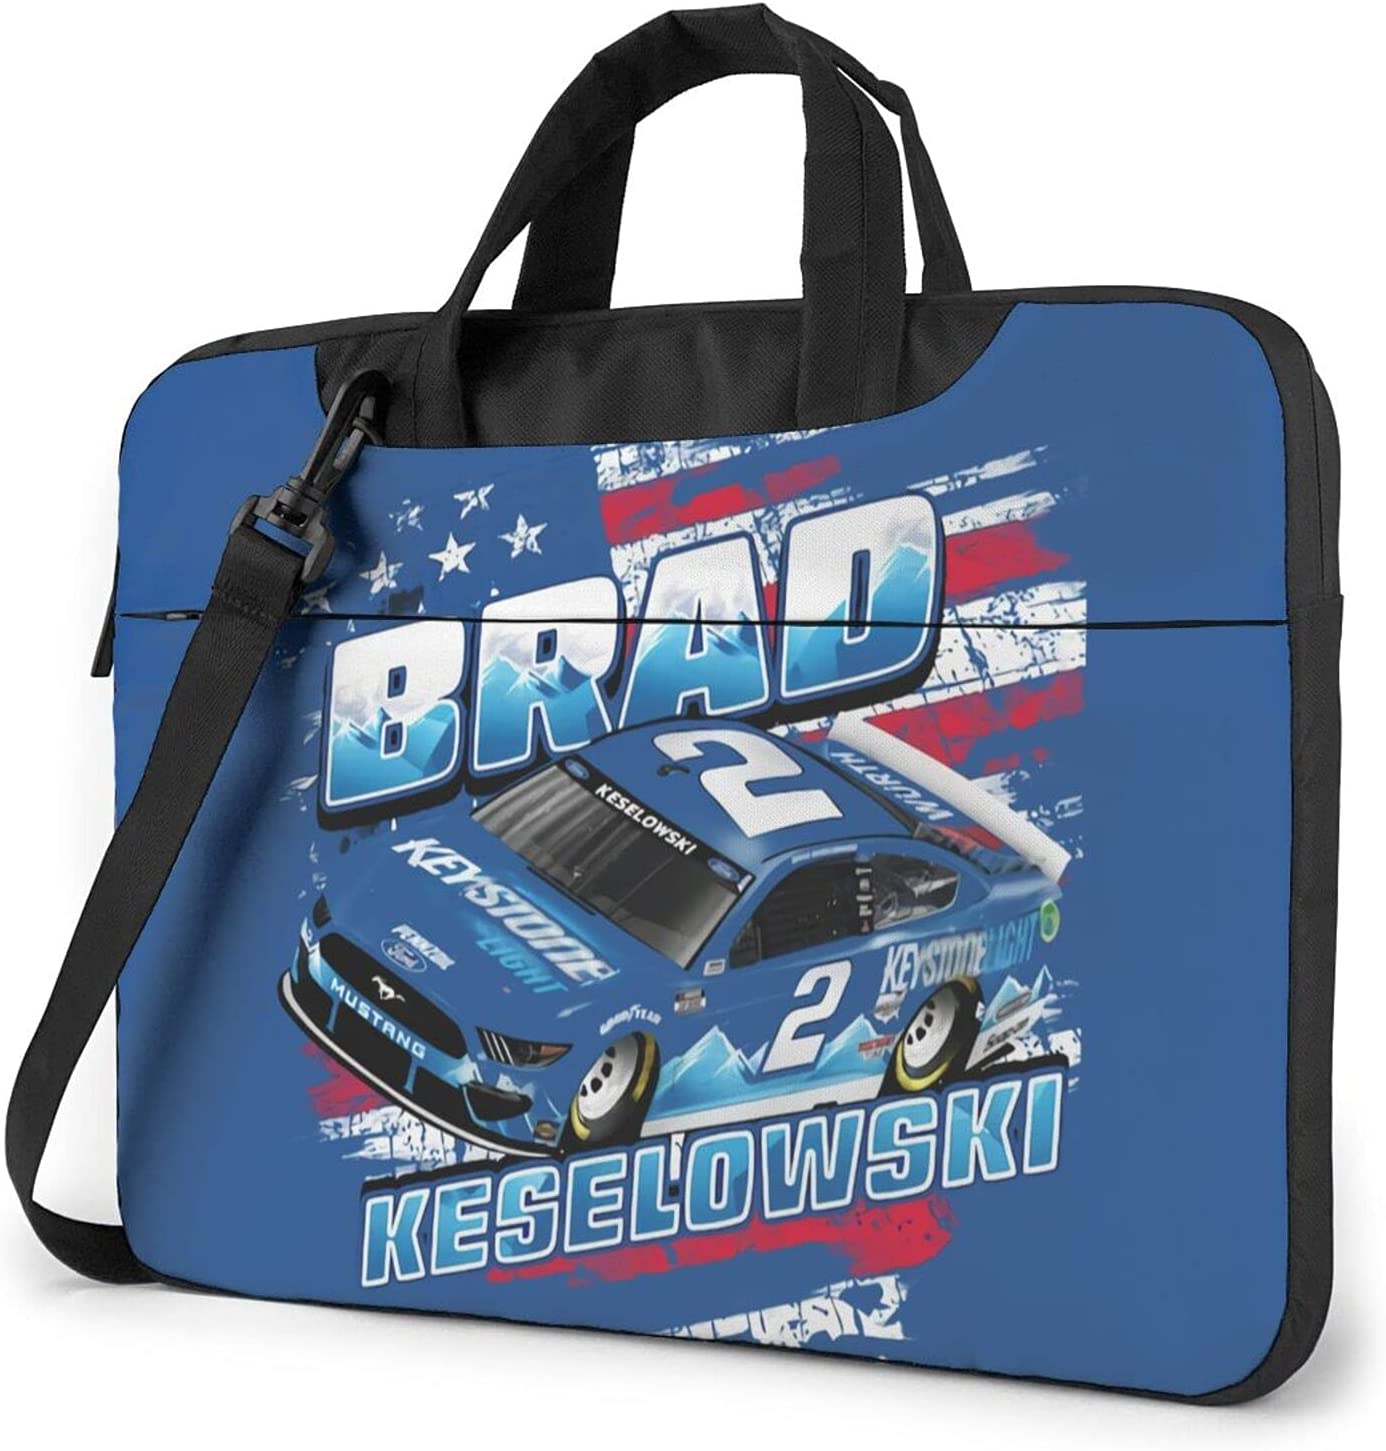 BLESS LINEN Spring new work one after another Brad Keselowski 2 Messenger Laptop Bag SEAL limited product Shoulder Brie